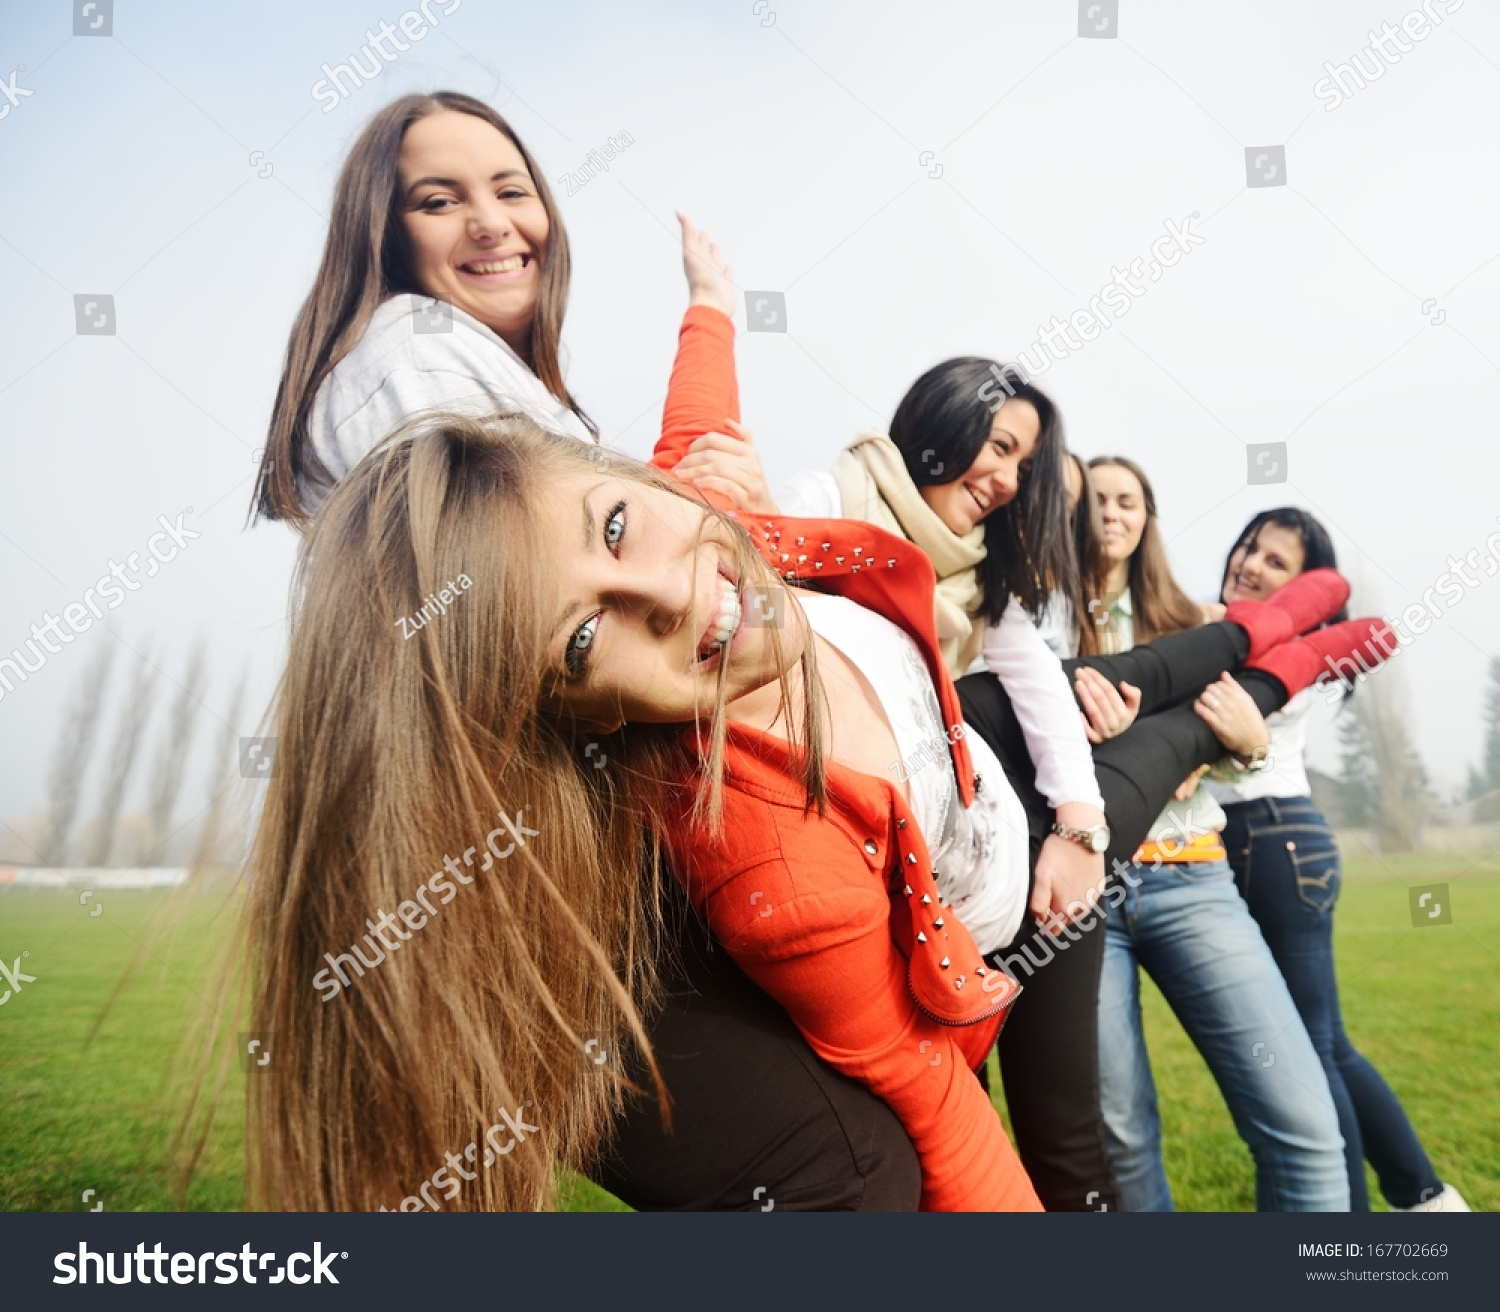 Have Friend having picture teen